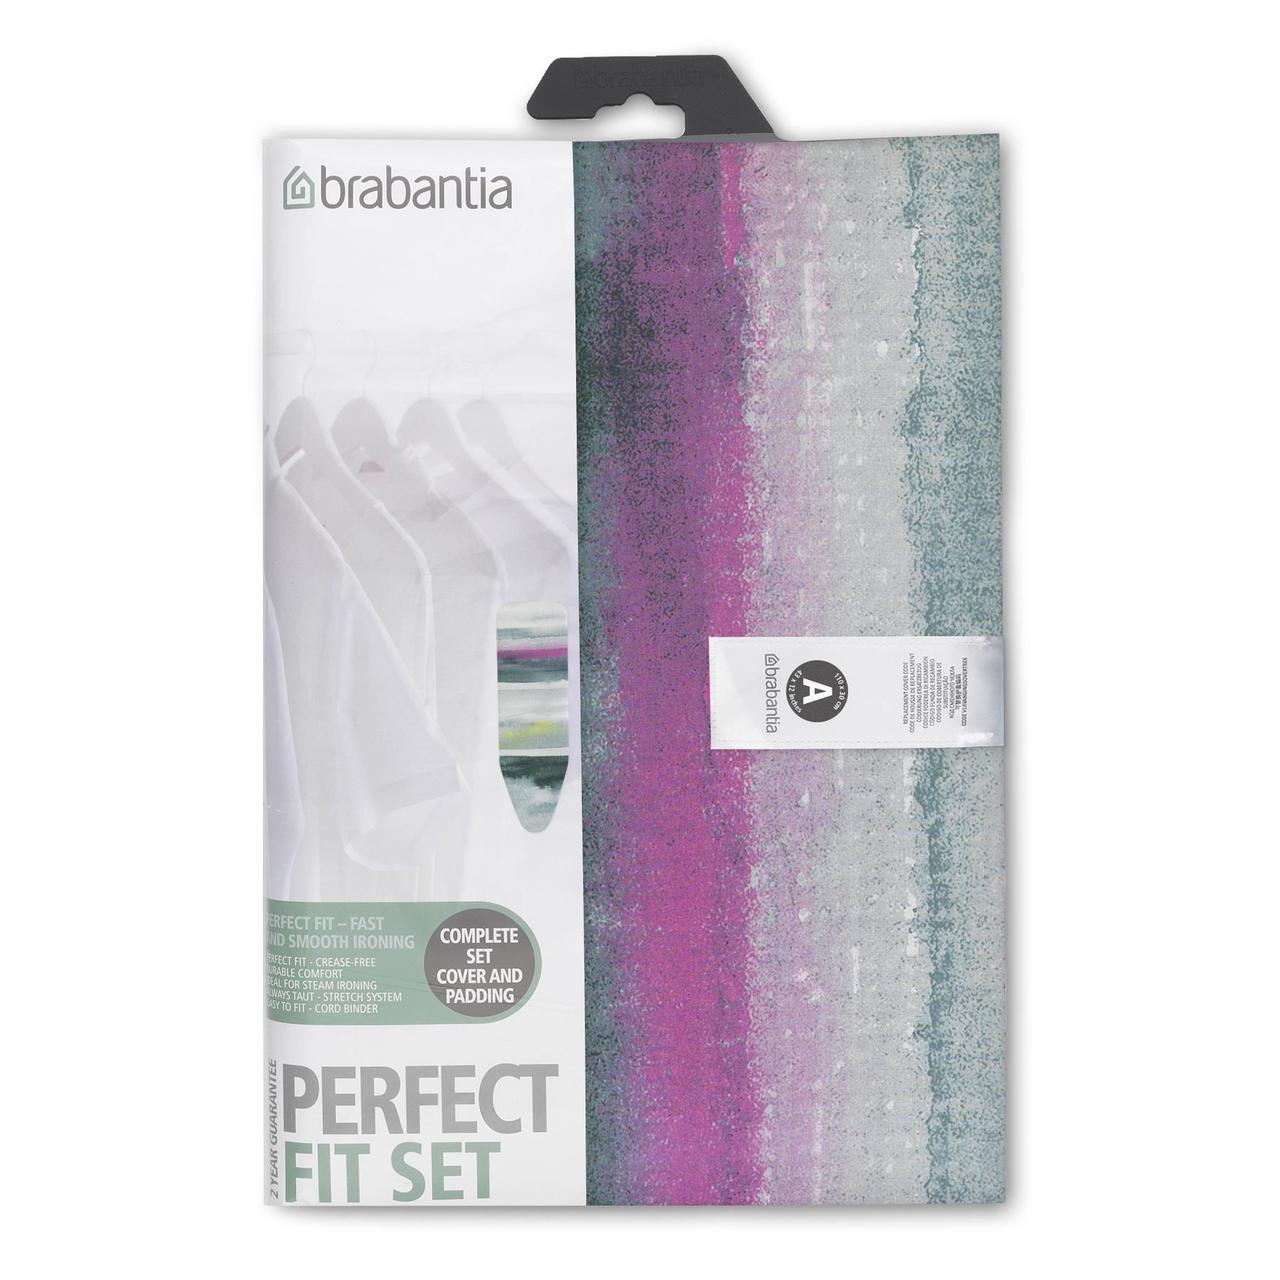 Latest brabantia Ironing Boards Products | Enjoy Huge Discounts